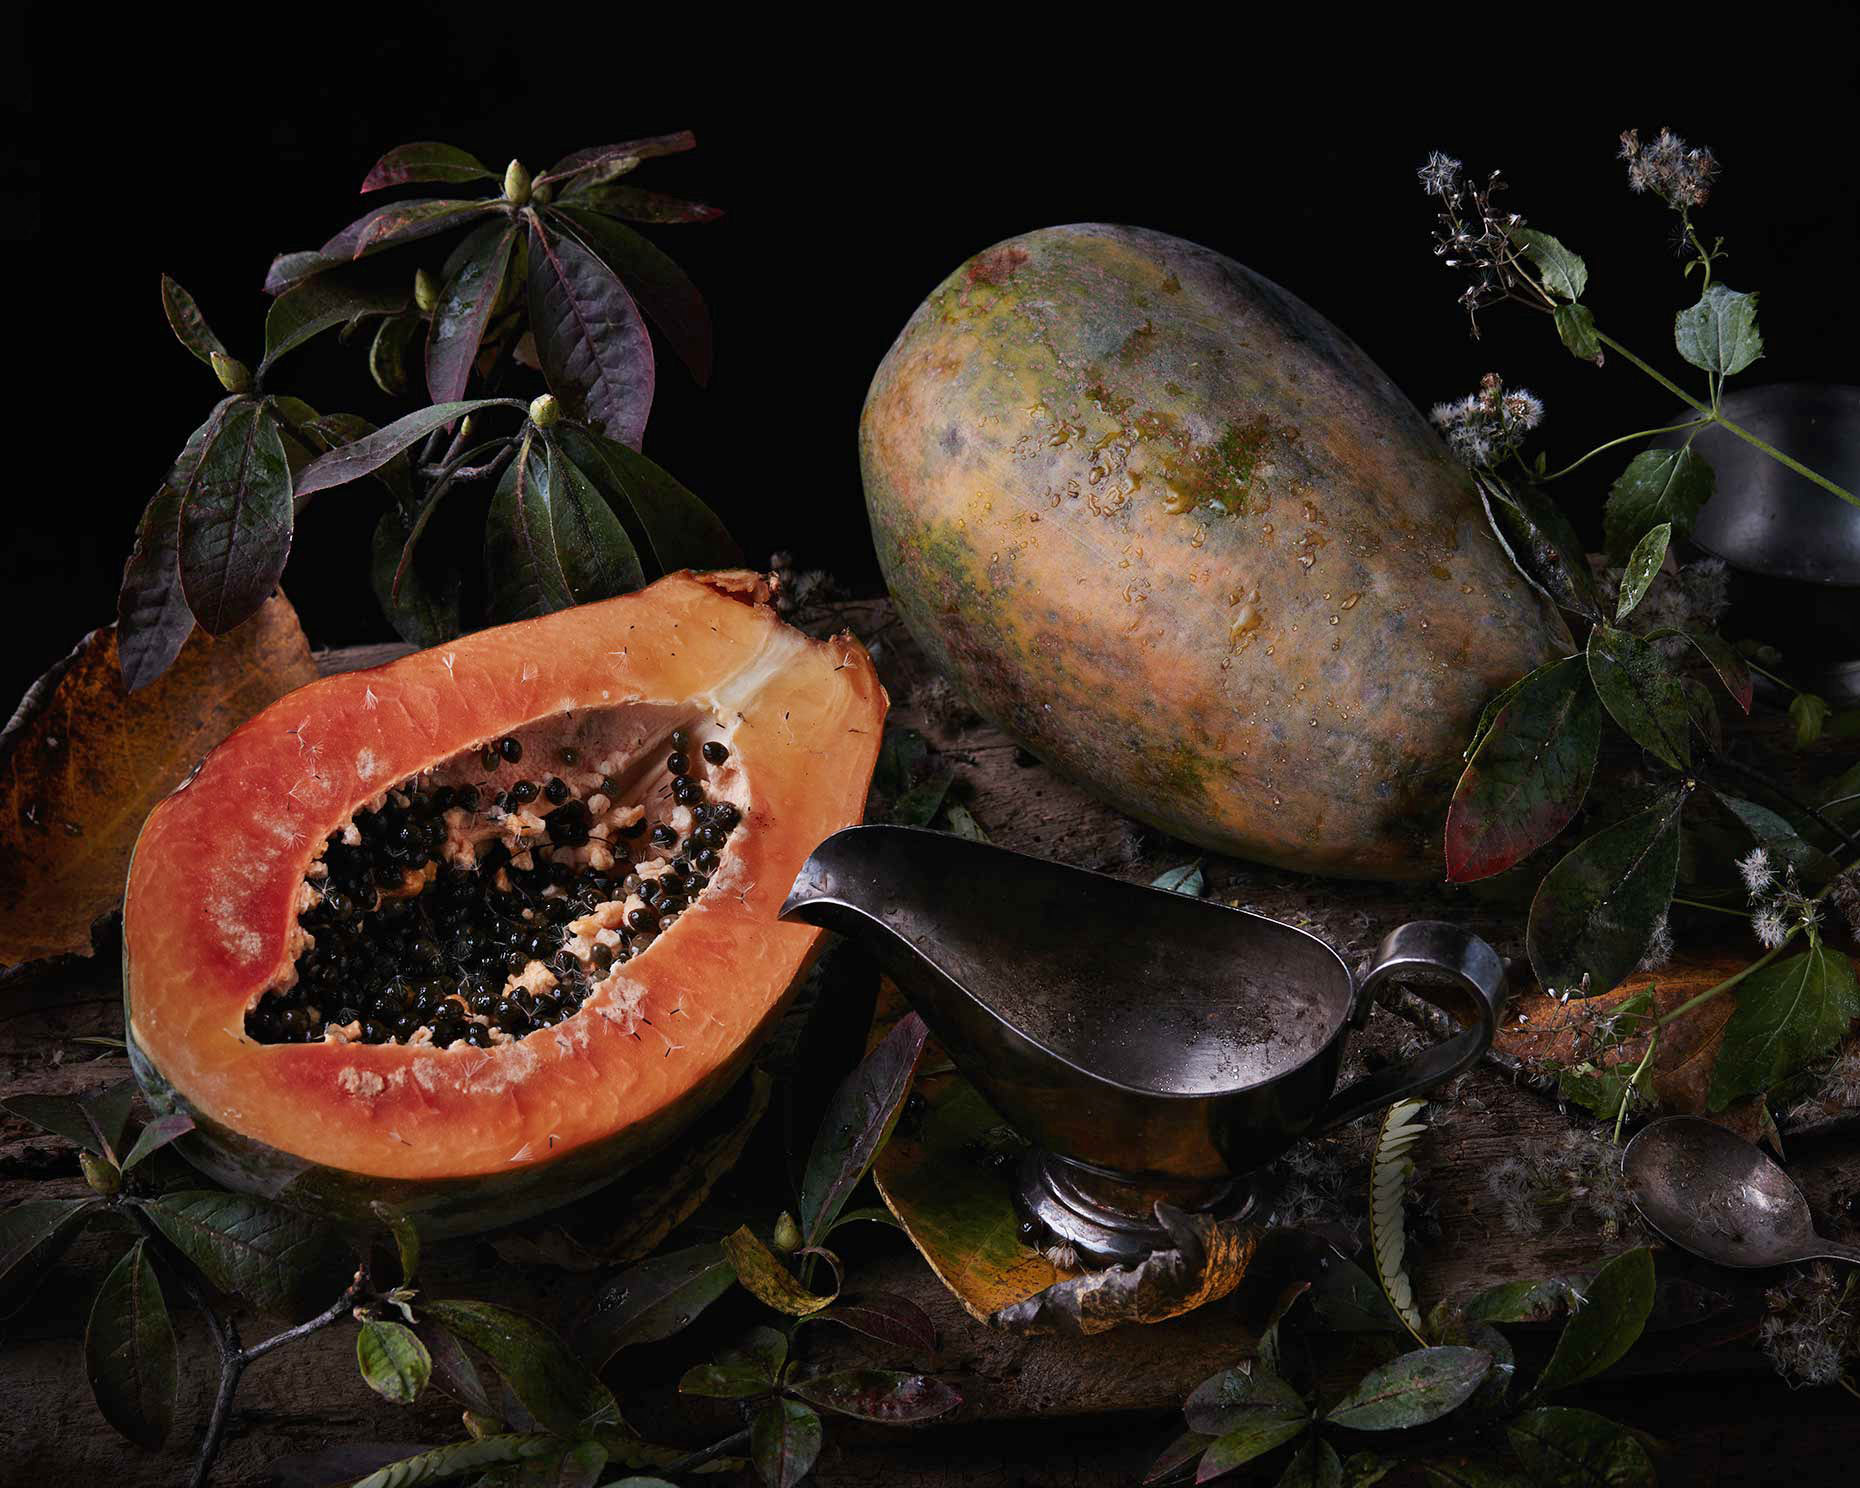 Moody colorful still life photograph of papaya and garden weeds.